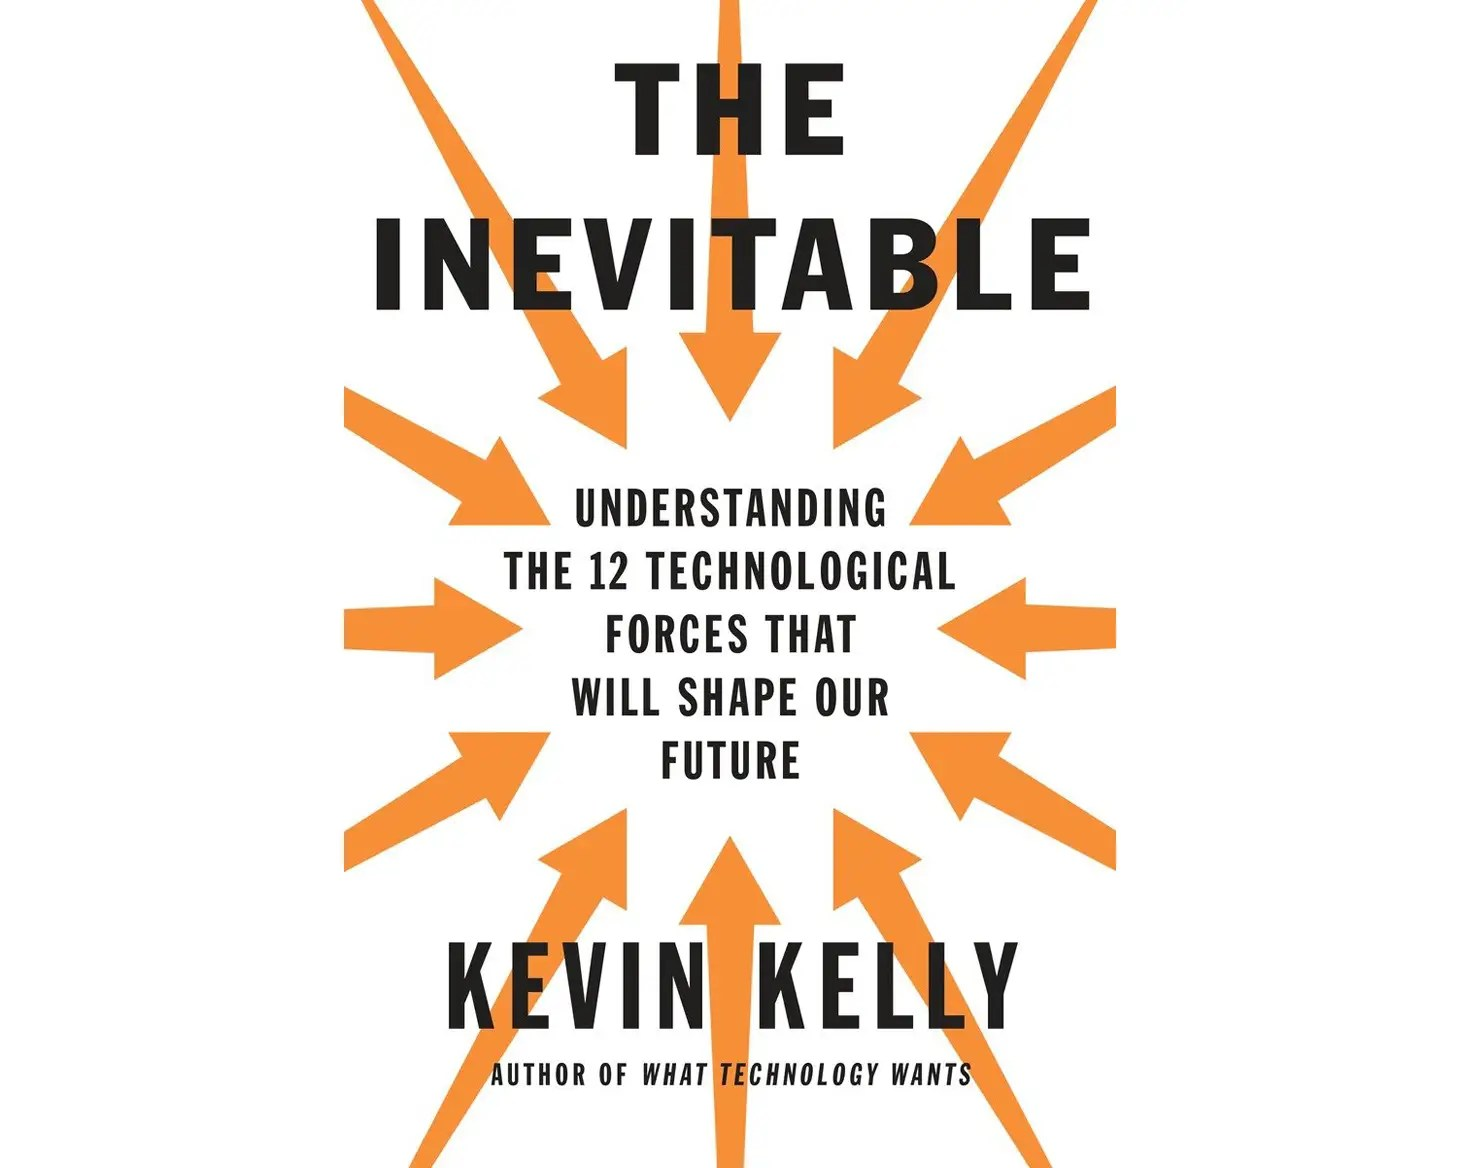 """The Inevitable: Understanding the 12 Technological Forces That Will Shape Our Future"" by Kevin Kelly"